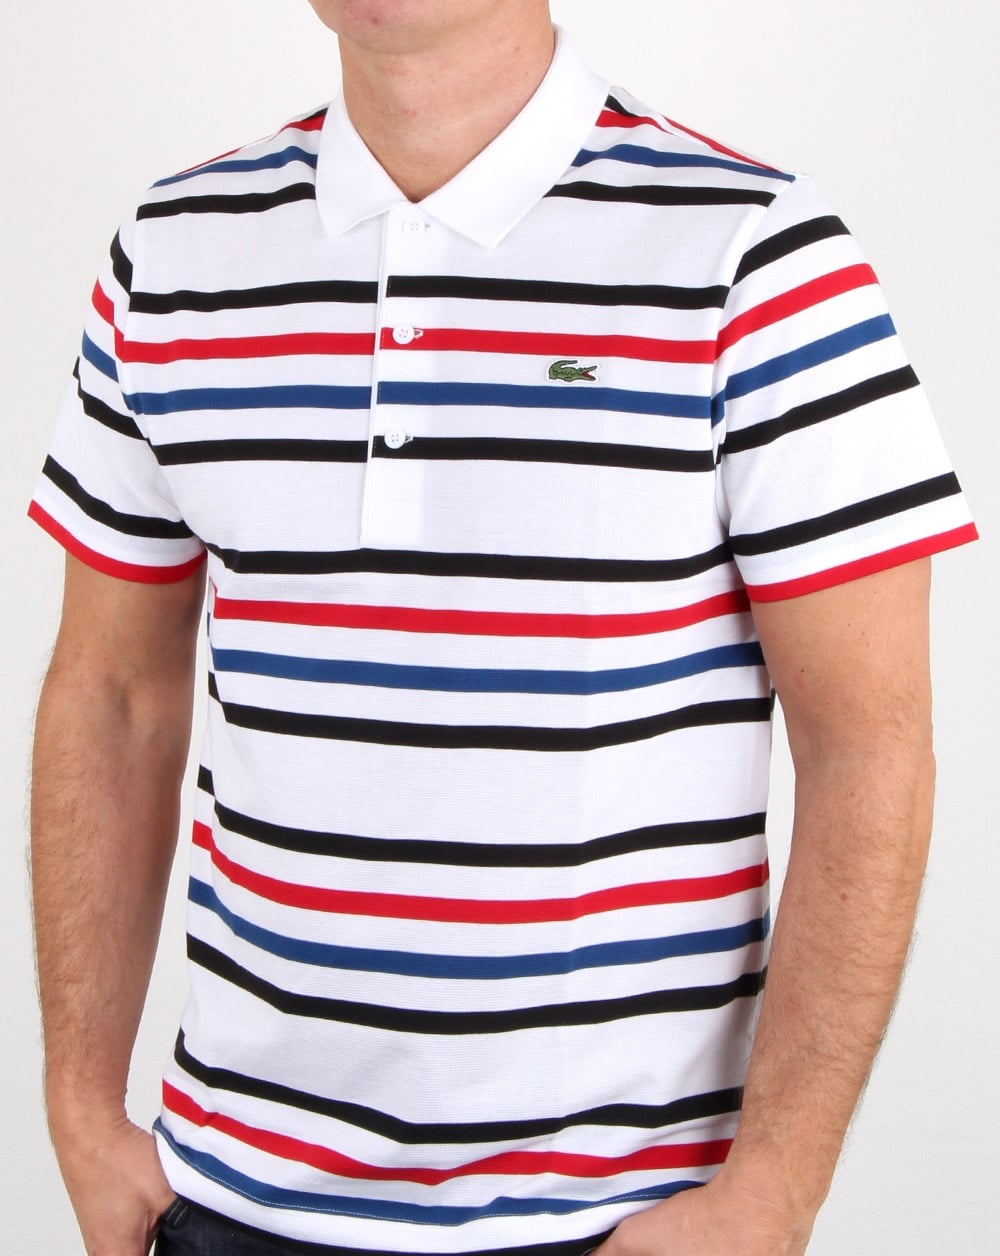 In Bcd India Lacoste House Shirt Sale Tofu eE2bWD9IHY